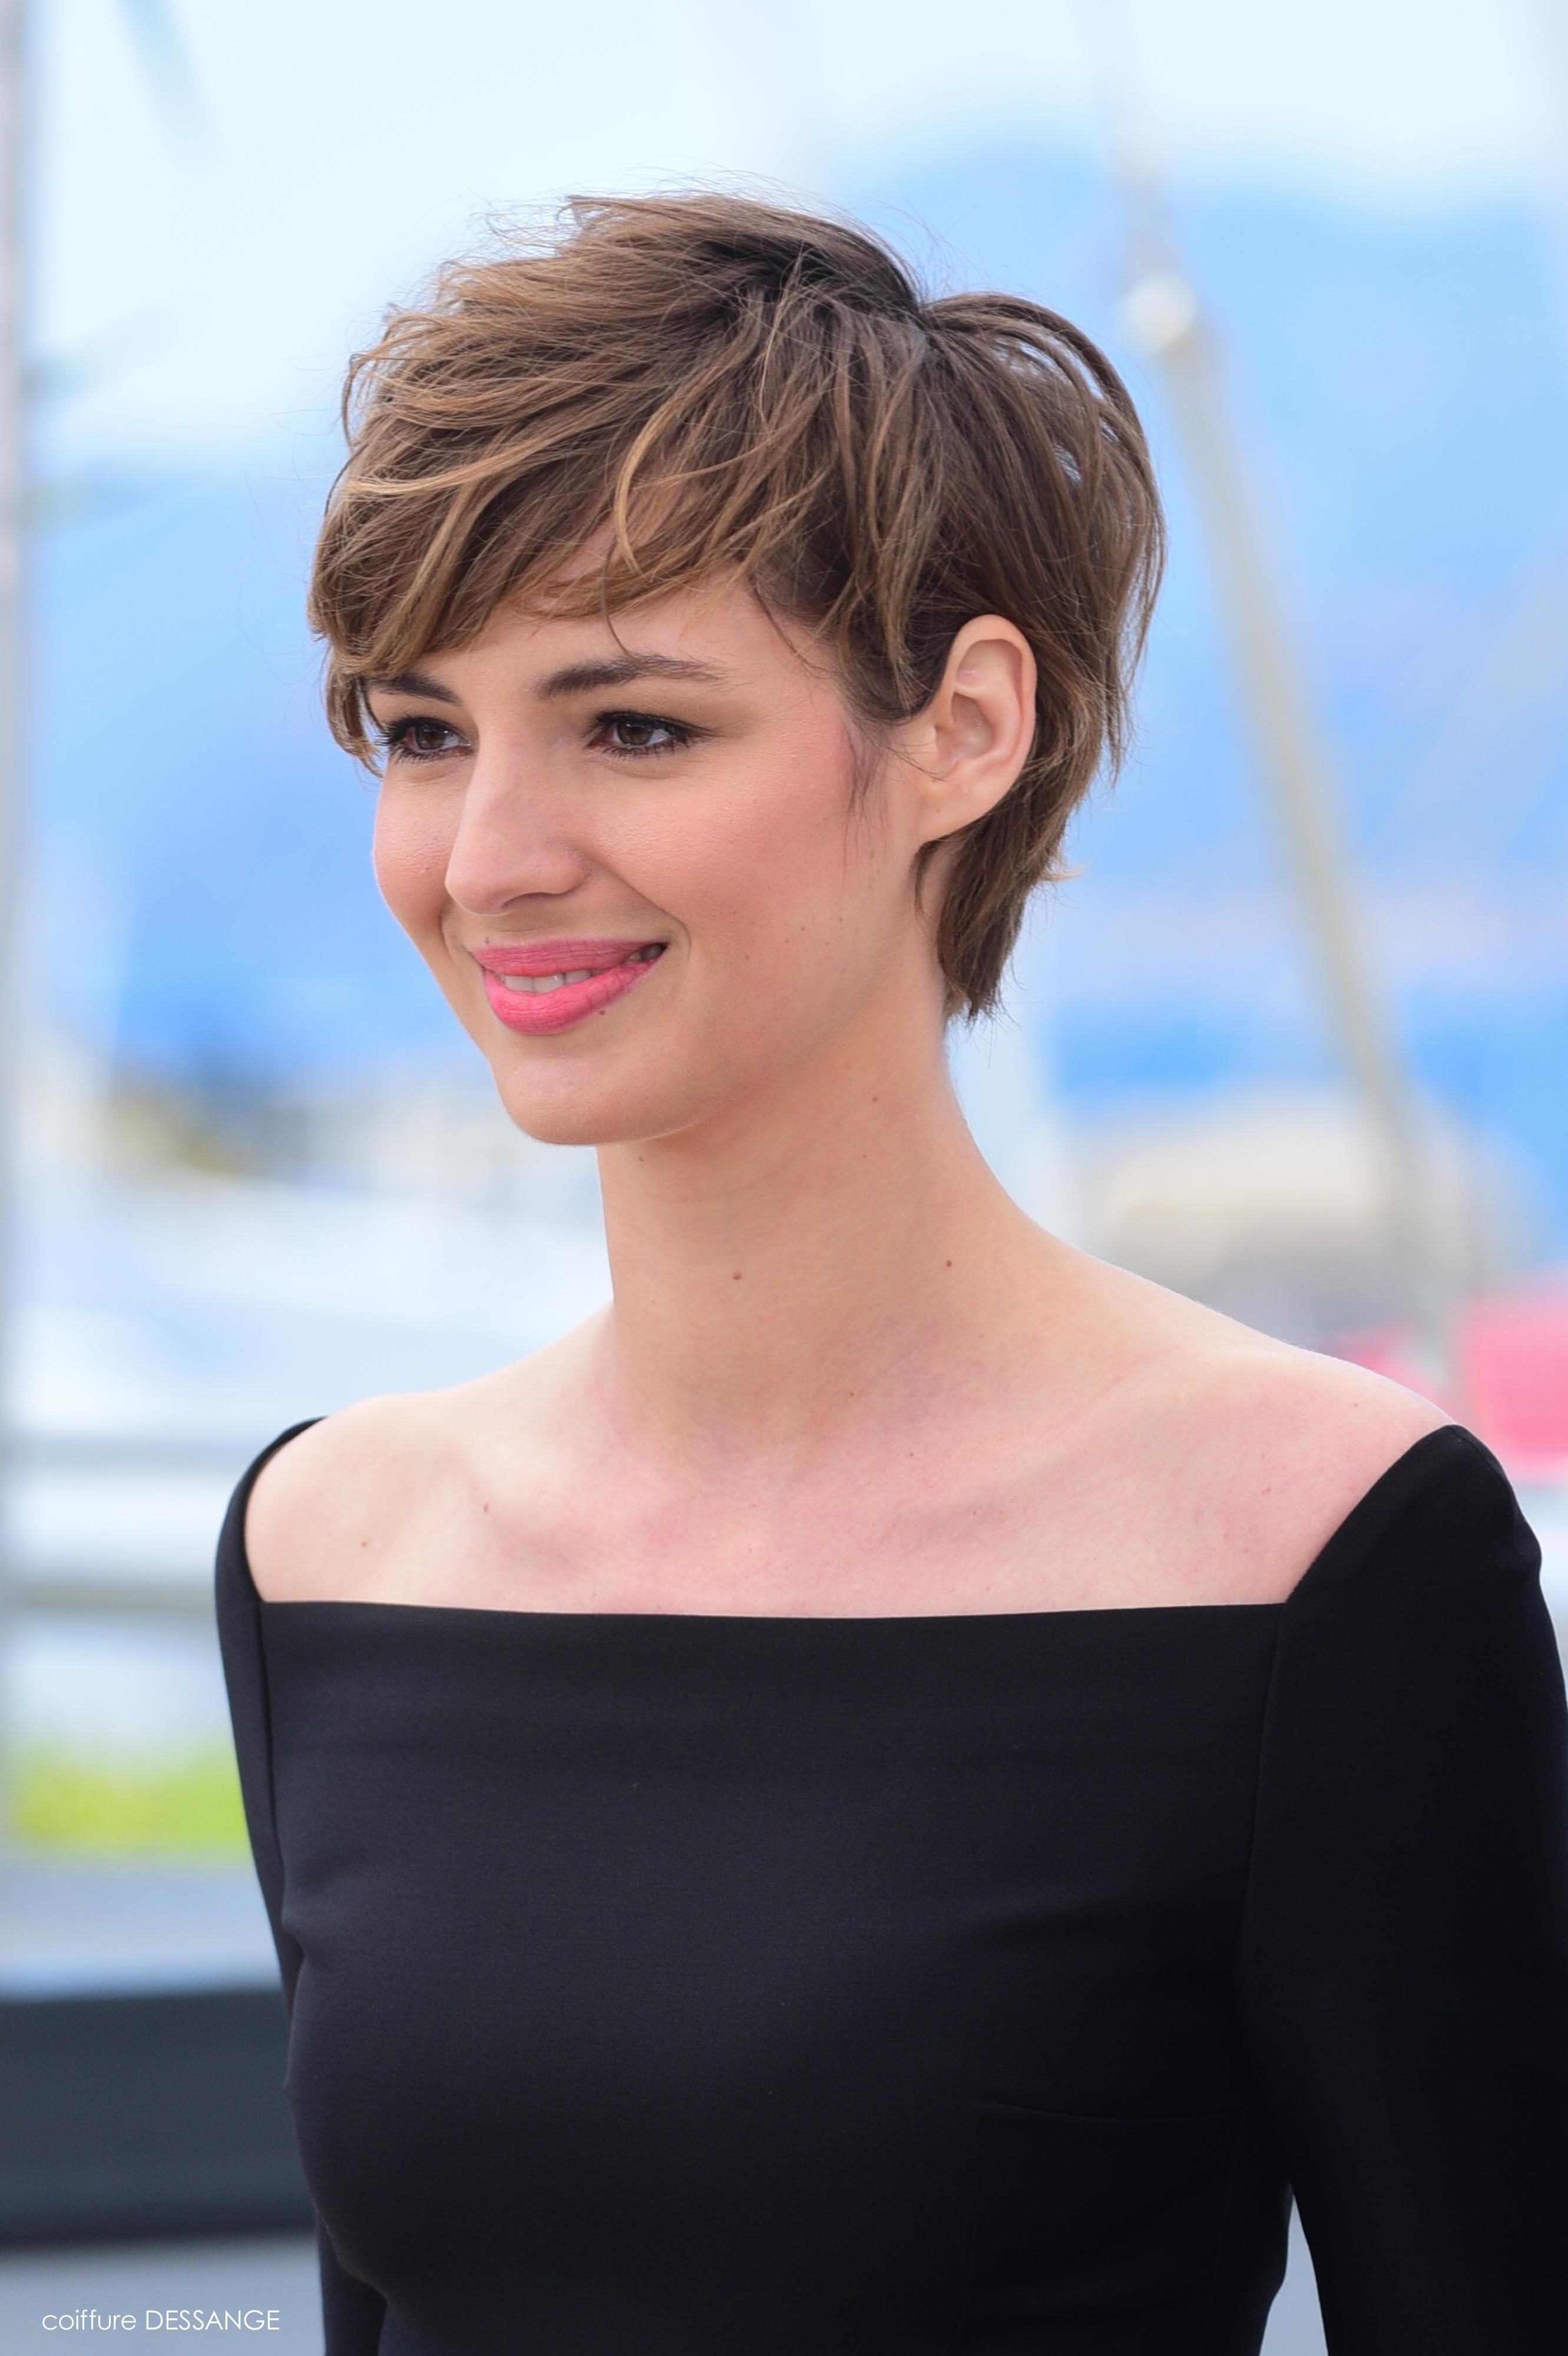 Coiffure Courte Brune Louise Bourgoin Fashion And Style Cheveux Coiffure Et